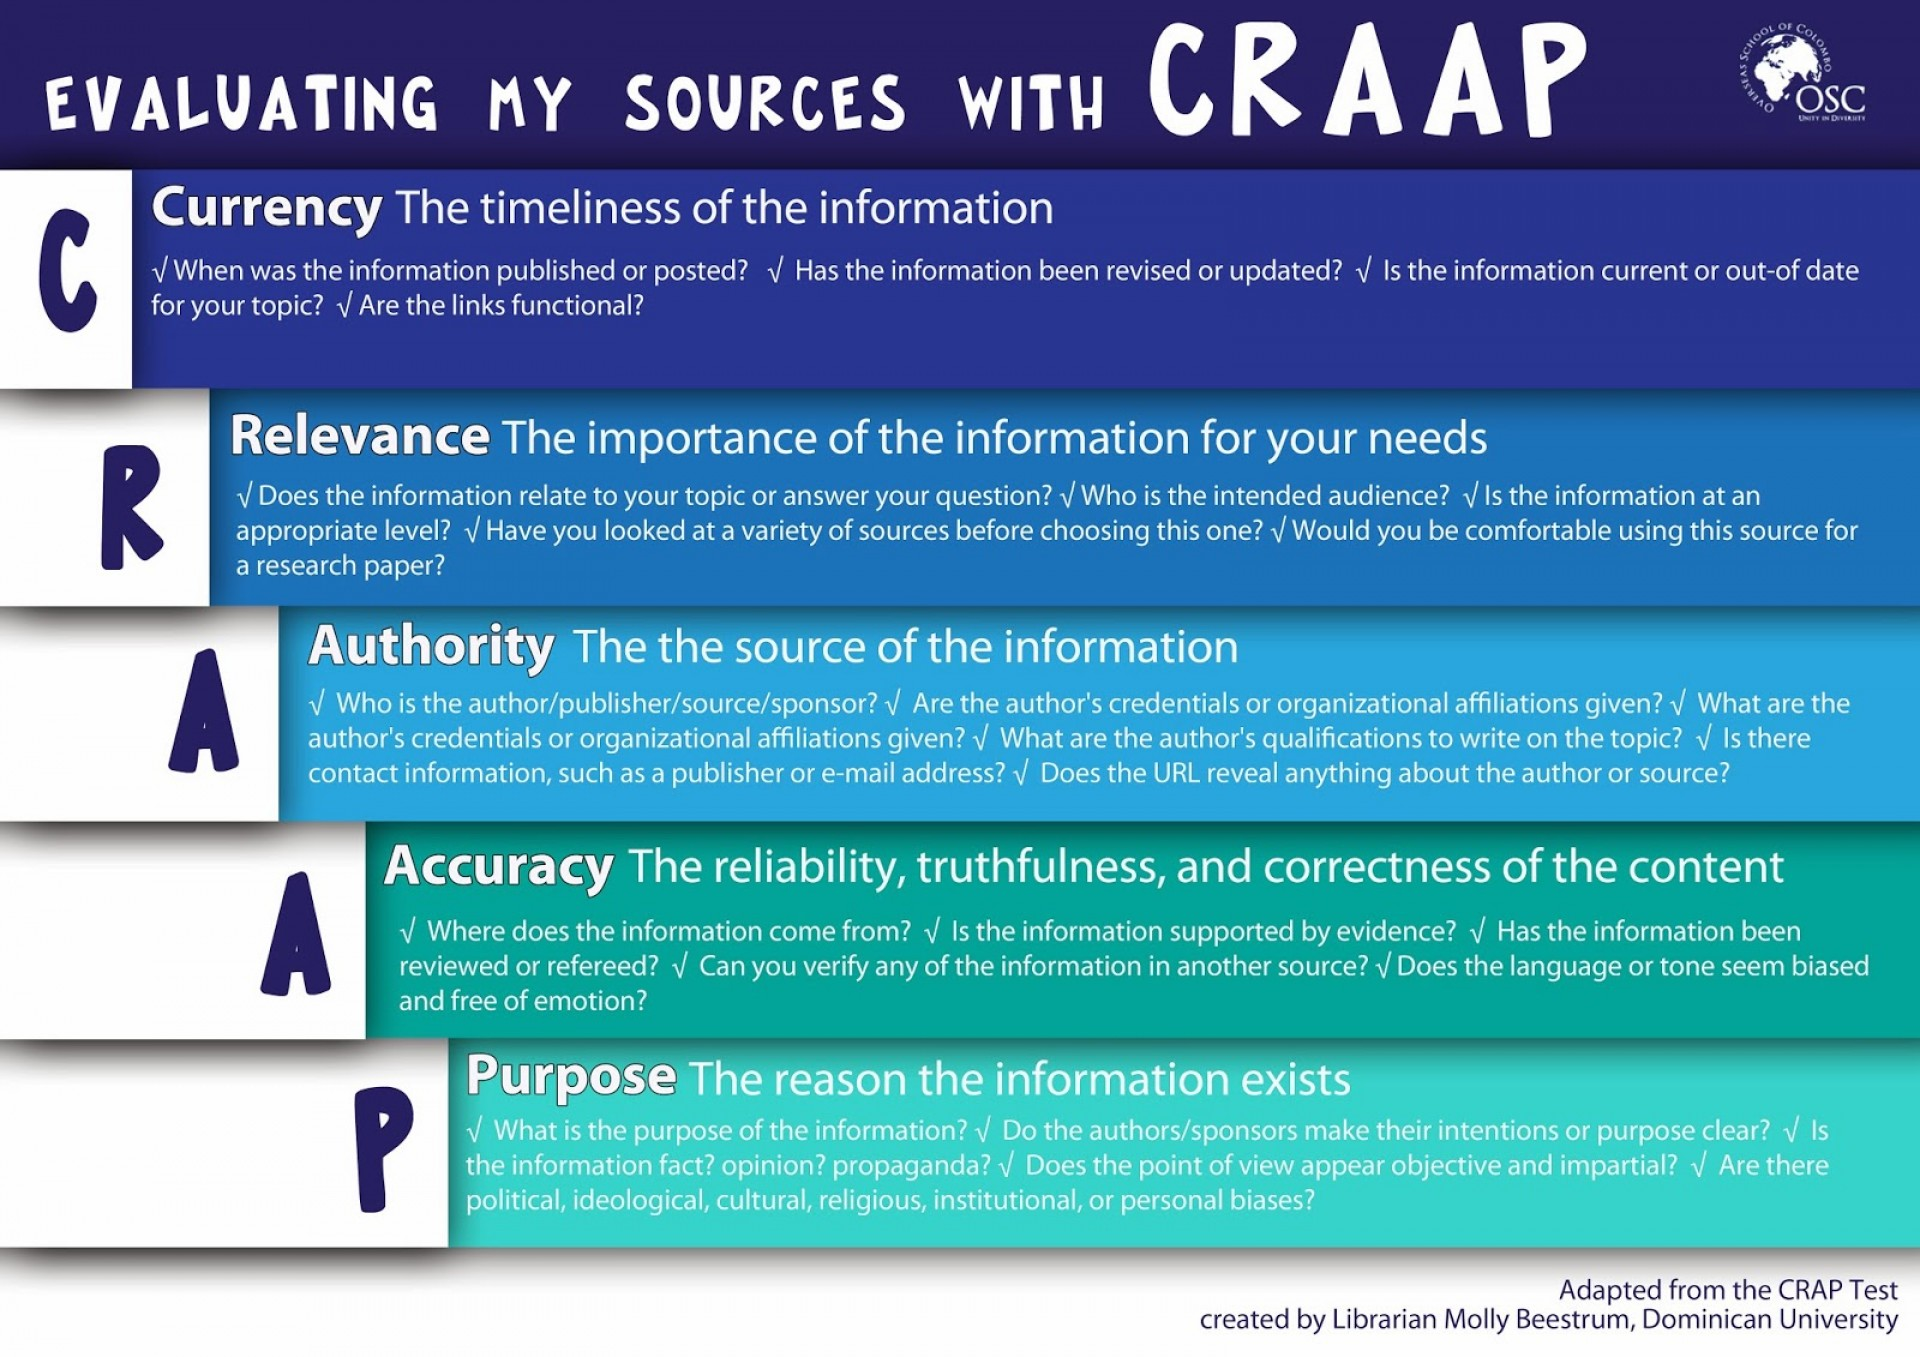 002 What Makes Source Credible For Research Paper Craap 1  Unbelievable A Are Information Sources Is Considered1920